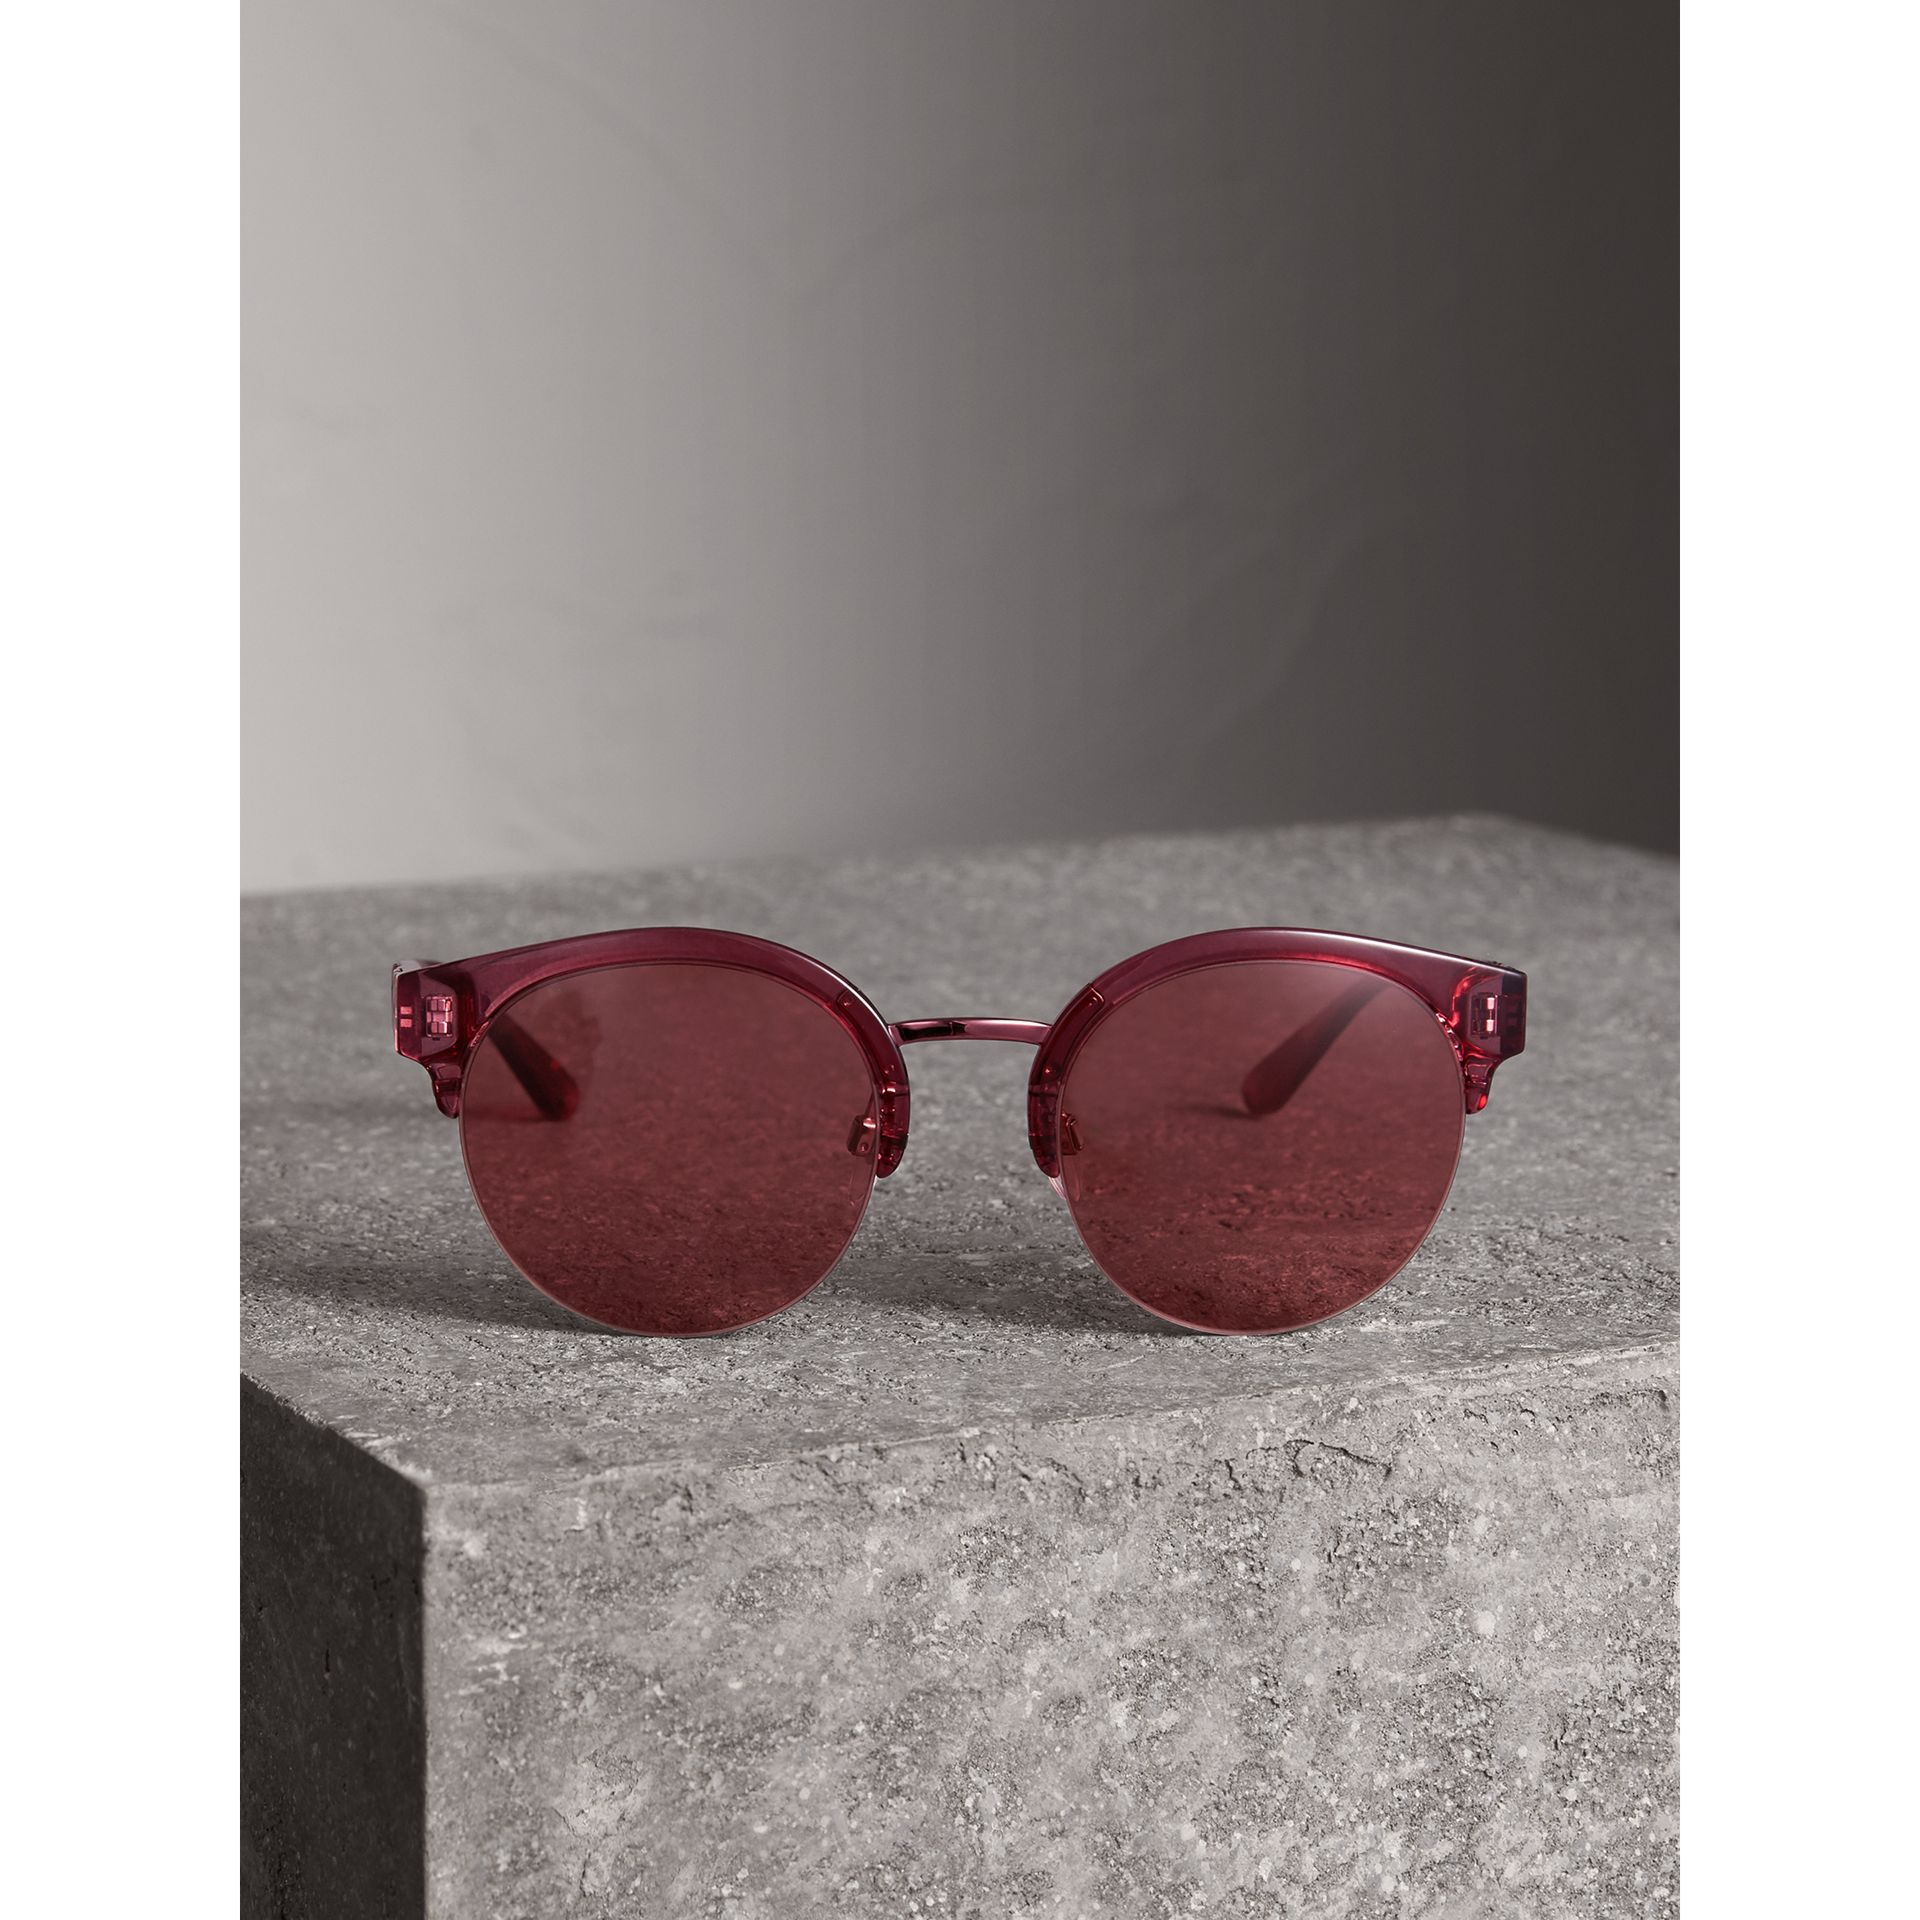 Check Detail Round Half-frame Sunglasses in Burgundy - Women | Burberry Canada - gallery image 3